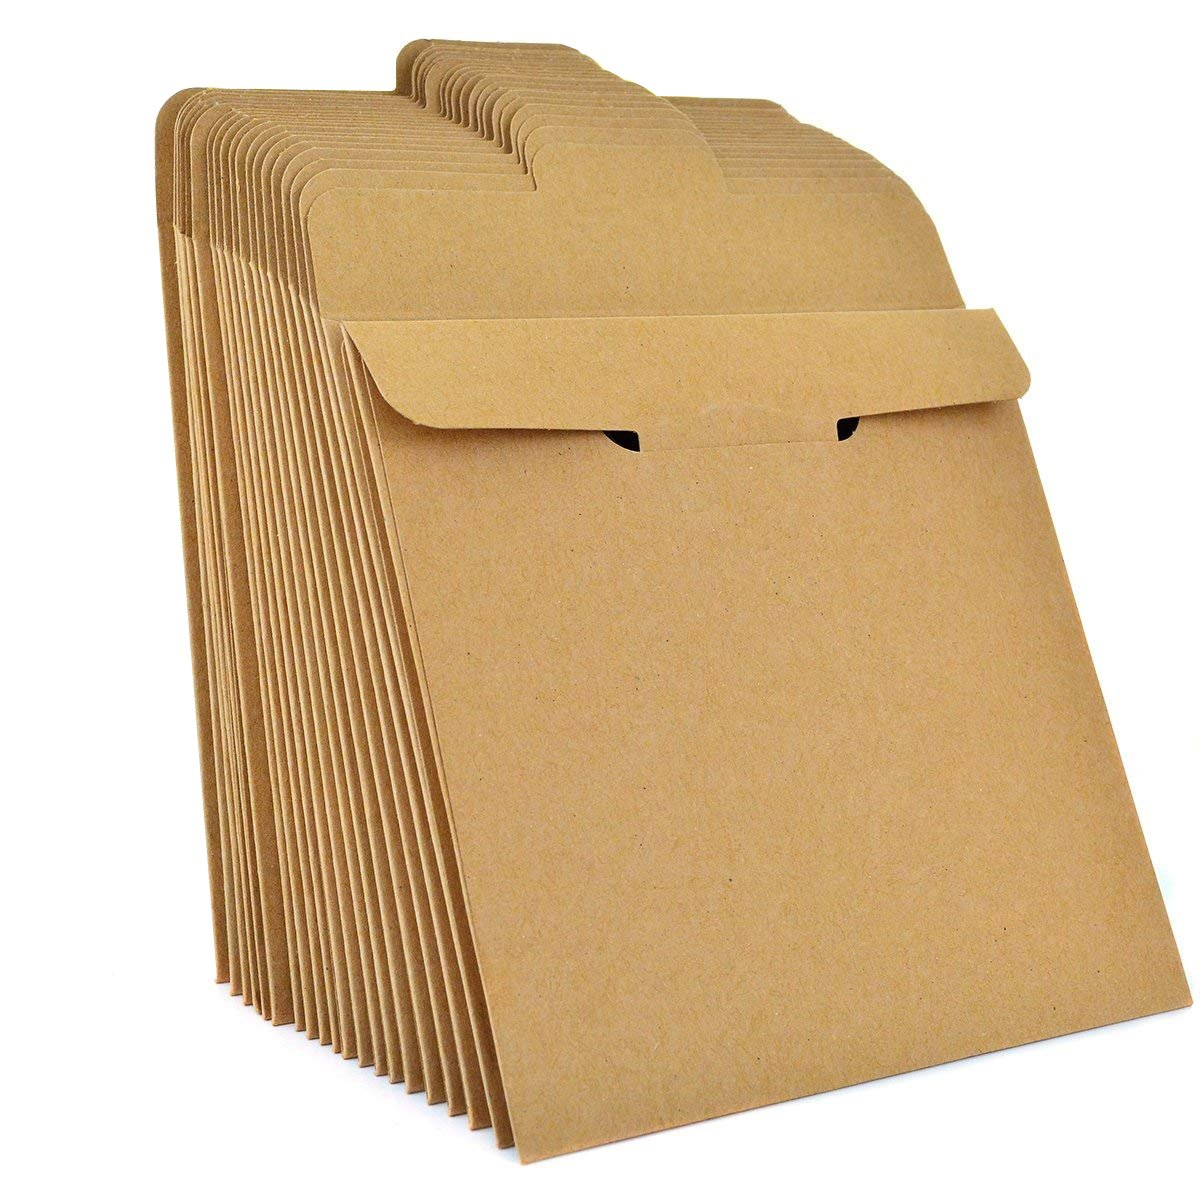 100 Pack Kraft Paper CD Sleeves, Ishua Retro DVD Envelopes 5'' x 5''(12.8 x 12.8 cm) Blank CD Paper Cardboard CD Paper Storage Holder Covers CD Packaging Bags Box Media Cases (Brown)